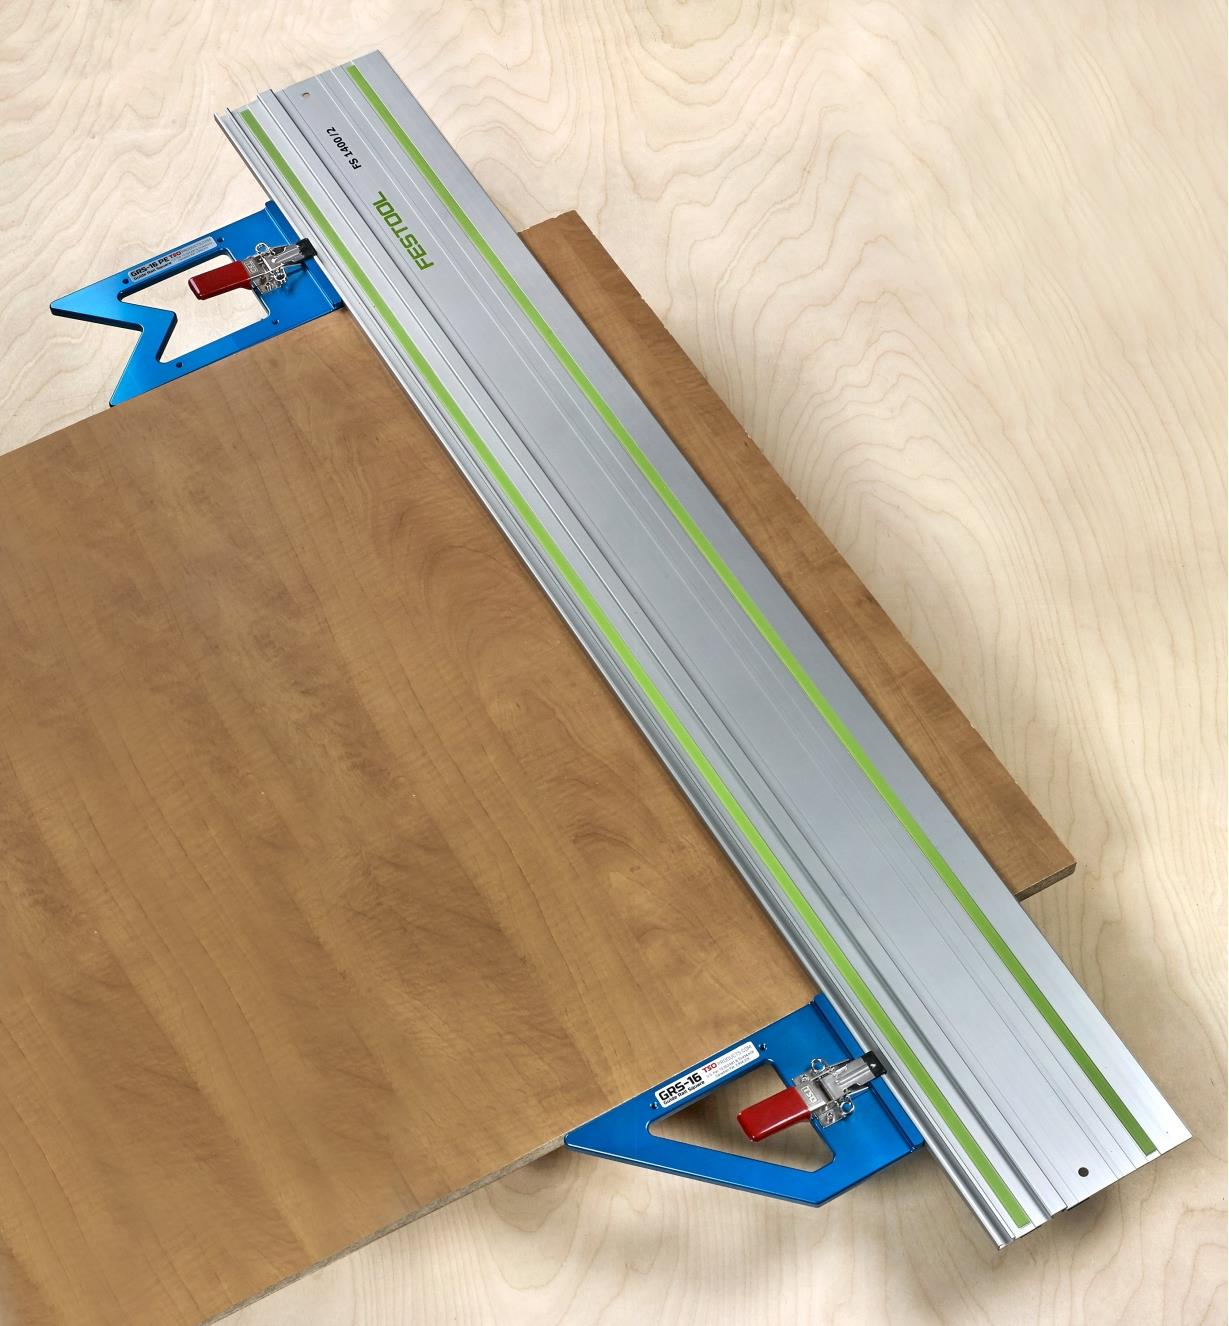 GRS-16 and GRS-PE guide rail squares on a track-saw guide, registered to opposite edges of a panel